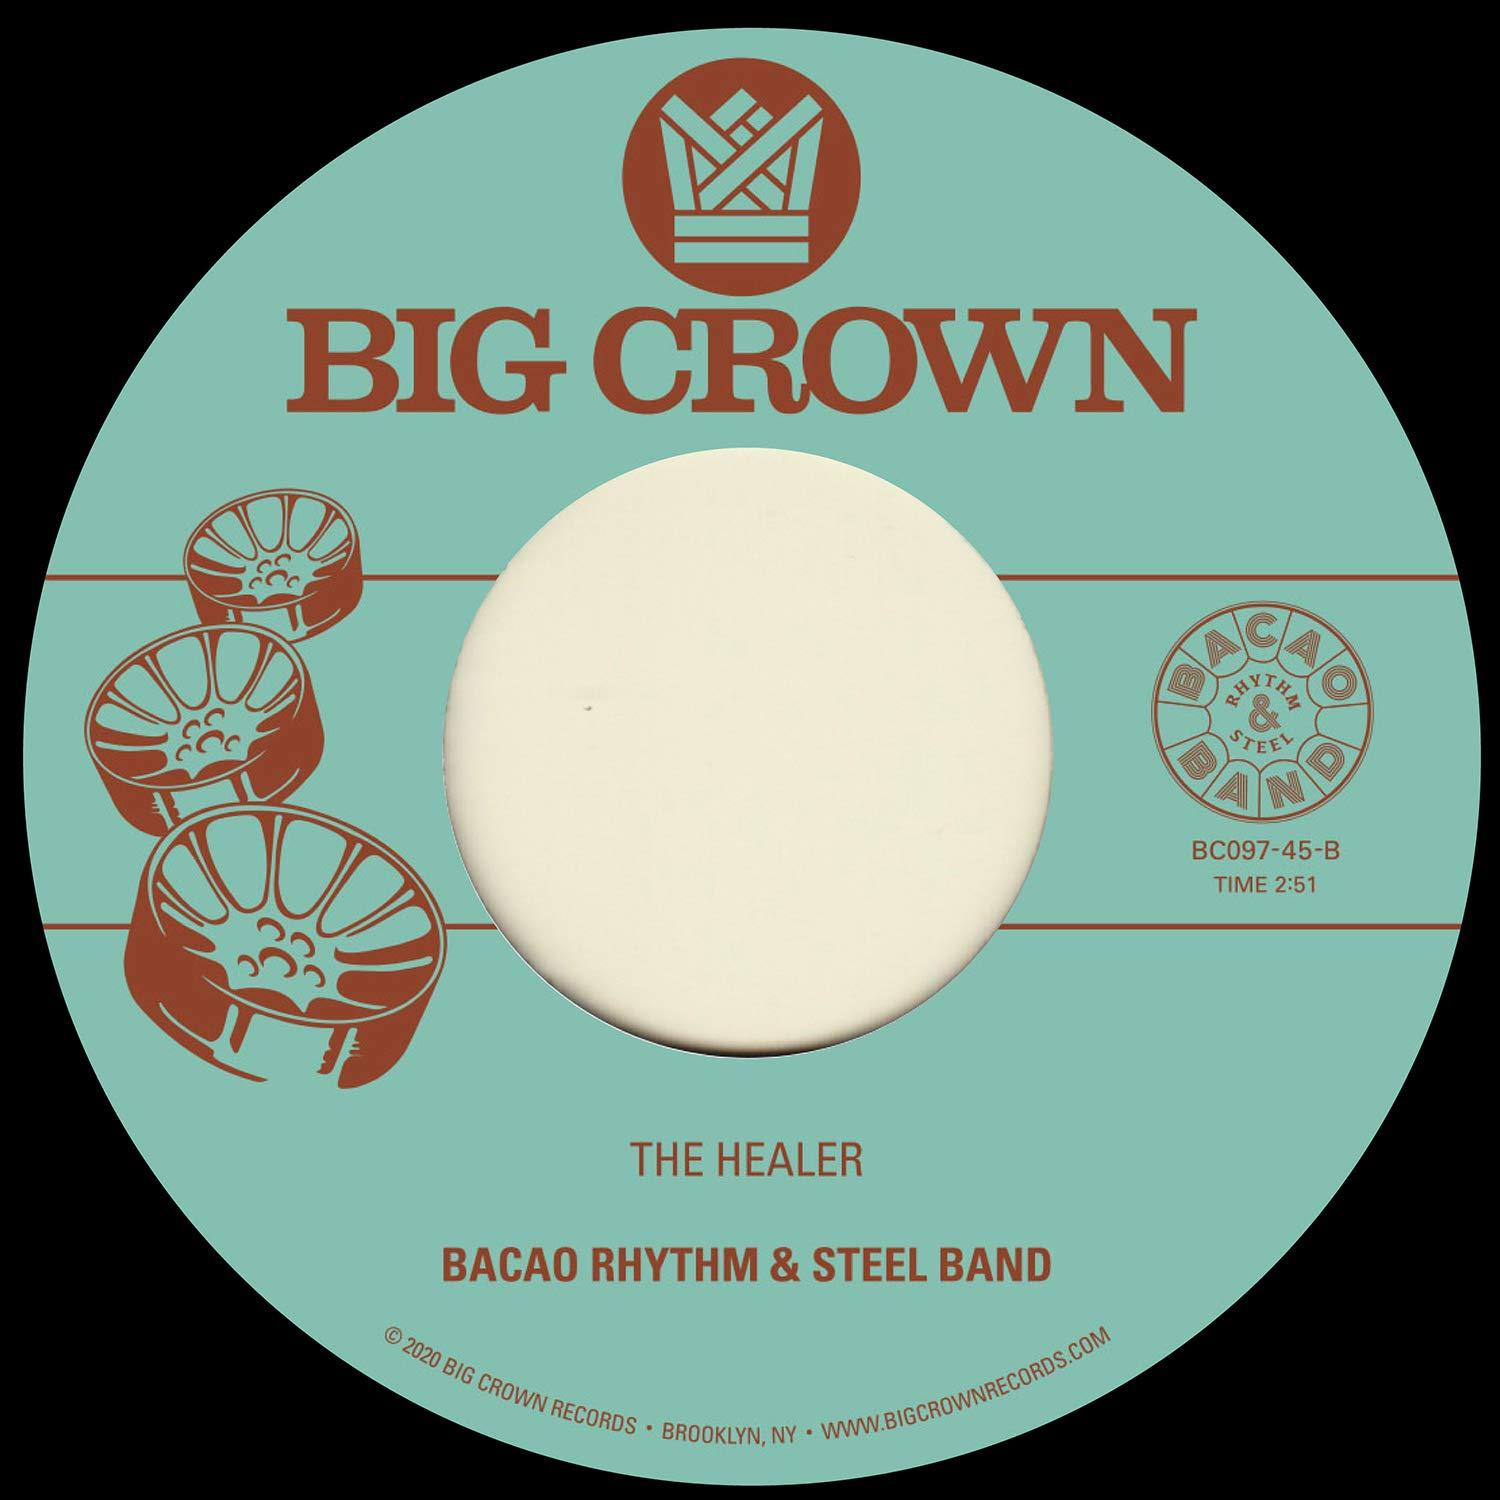 Bacao Rhythm & Steel Band - My Jamaican Dub b/w The Healer [7''] - Urban Vinyl | Records, Headphones, and more.